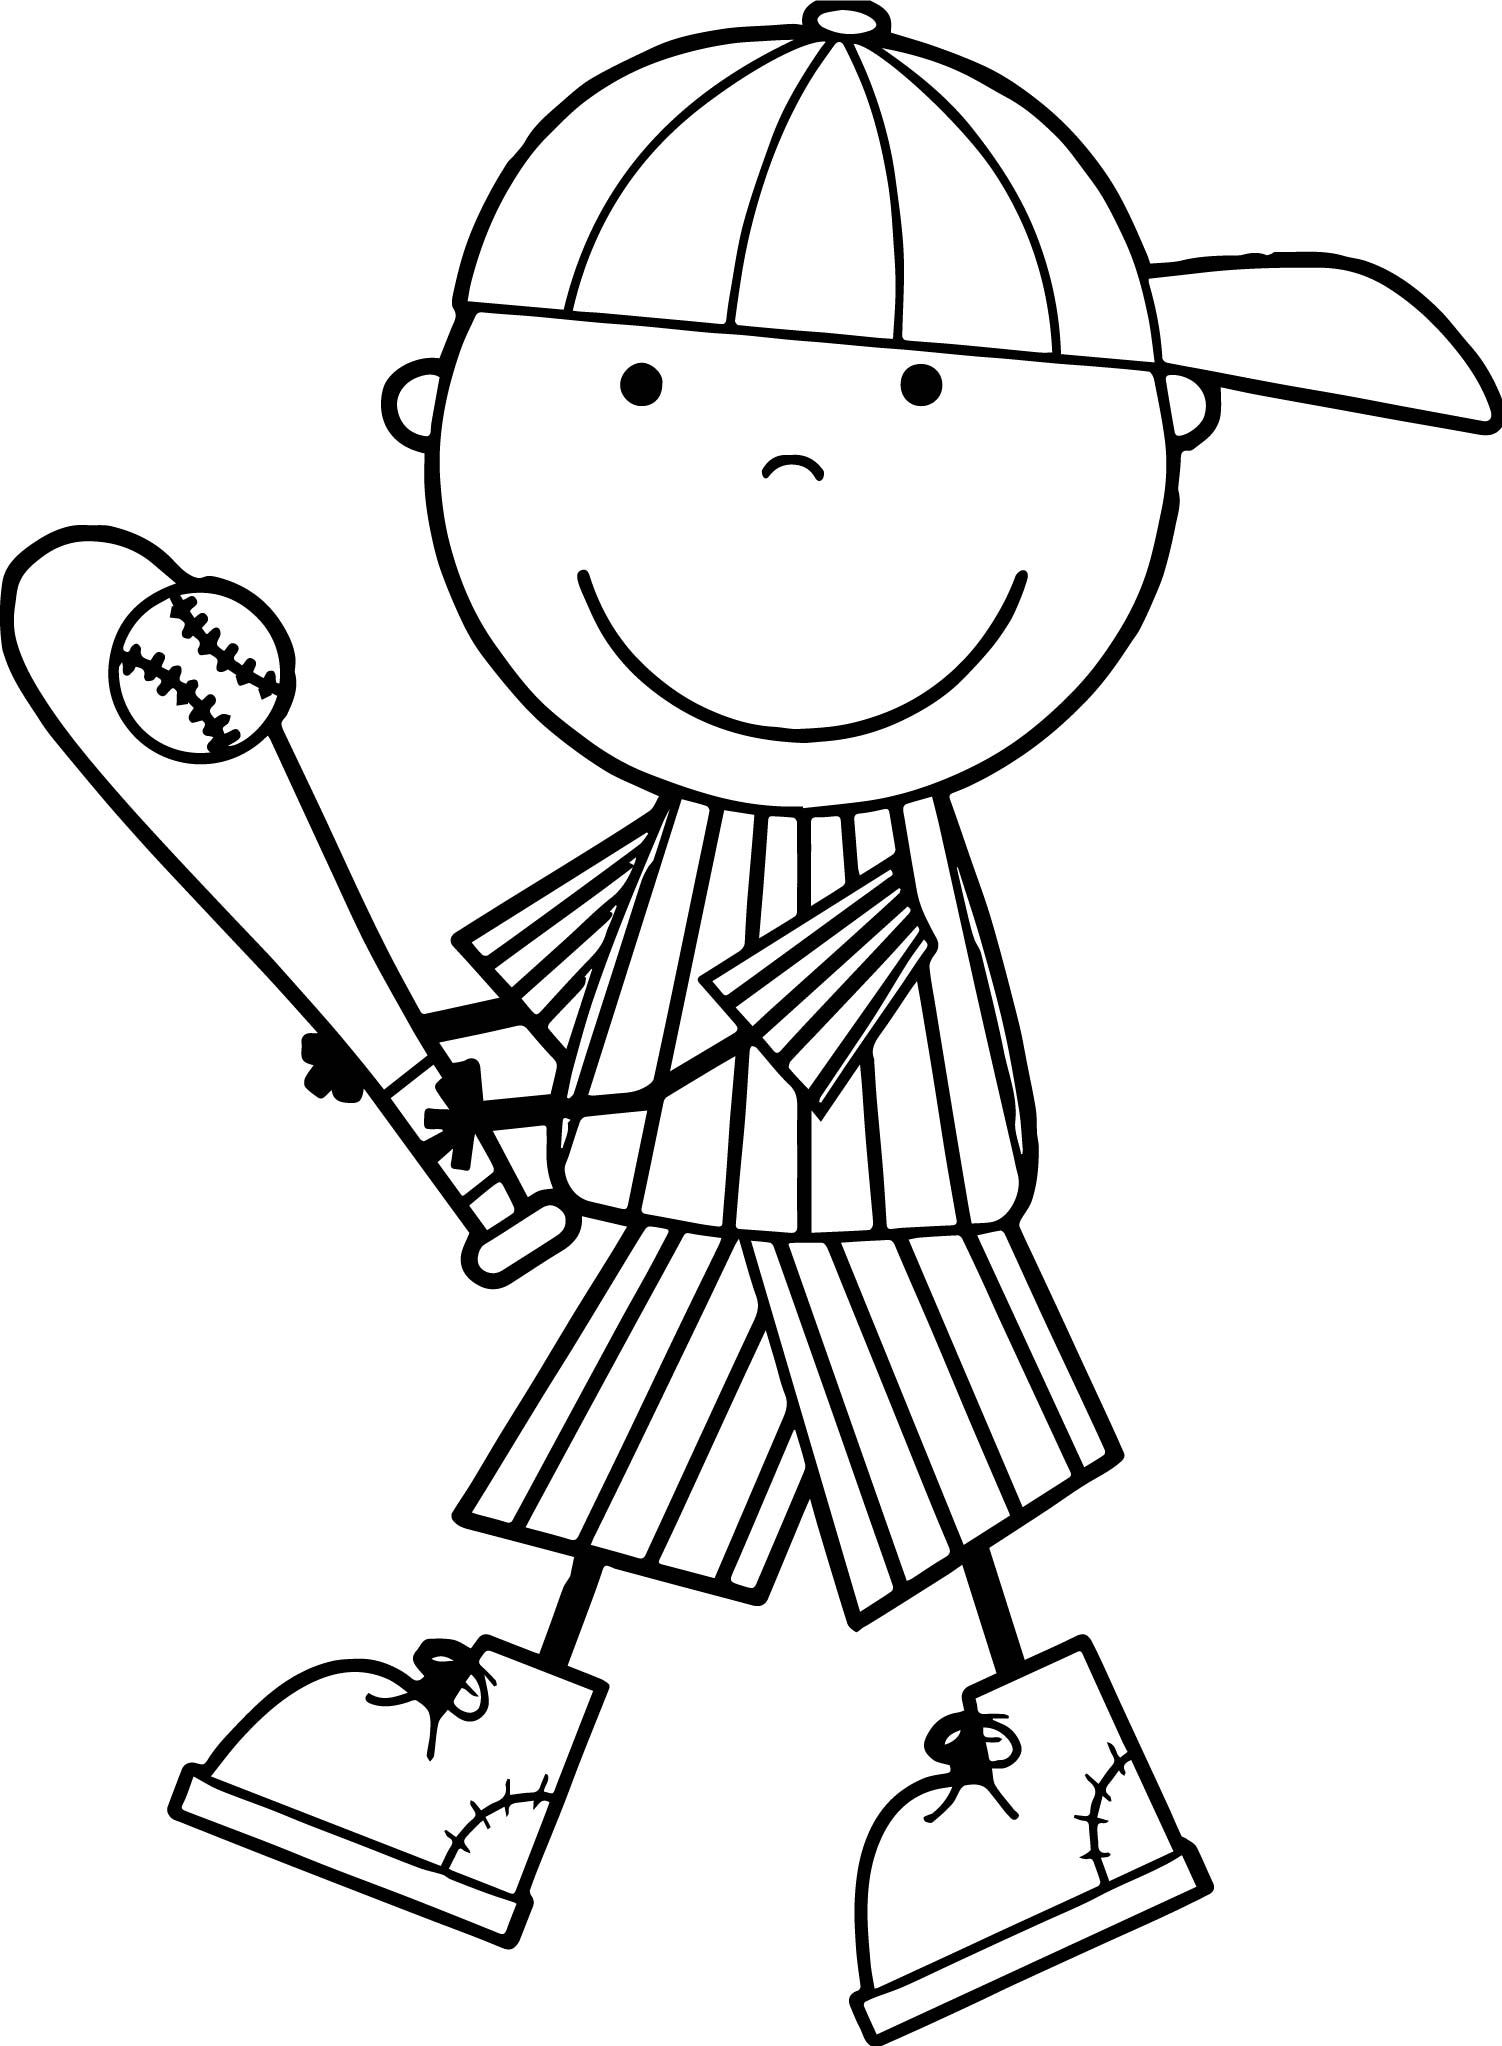 Awesome Cute Kids Playing Baseball Coloring Page